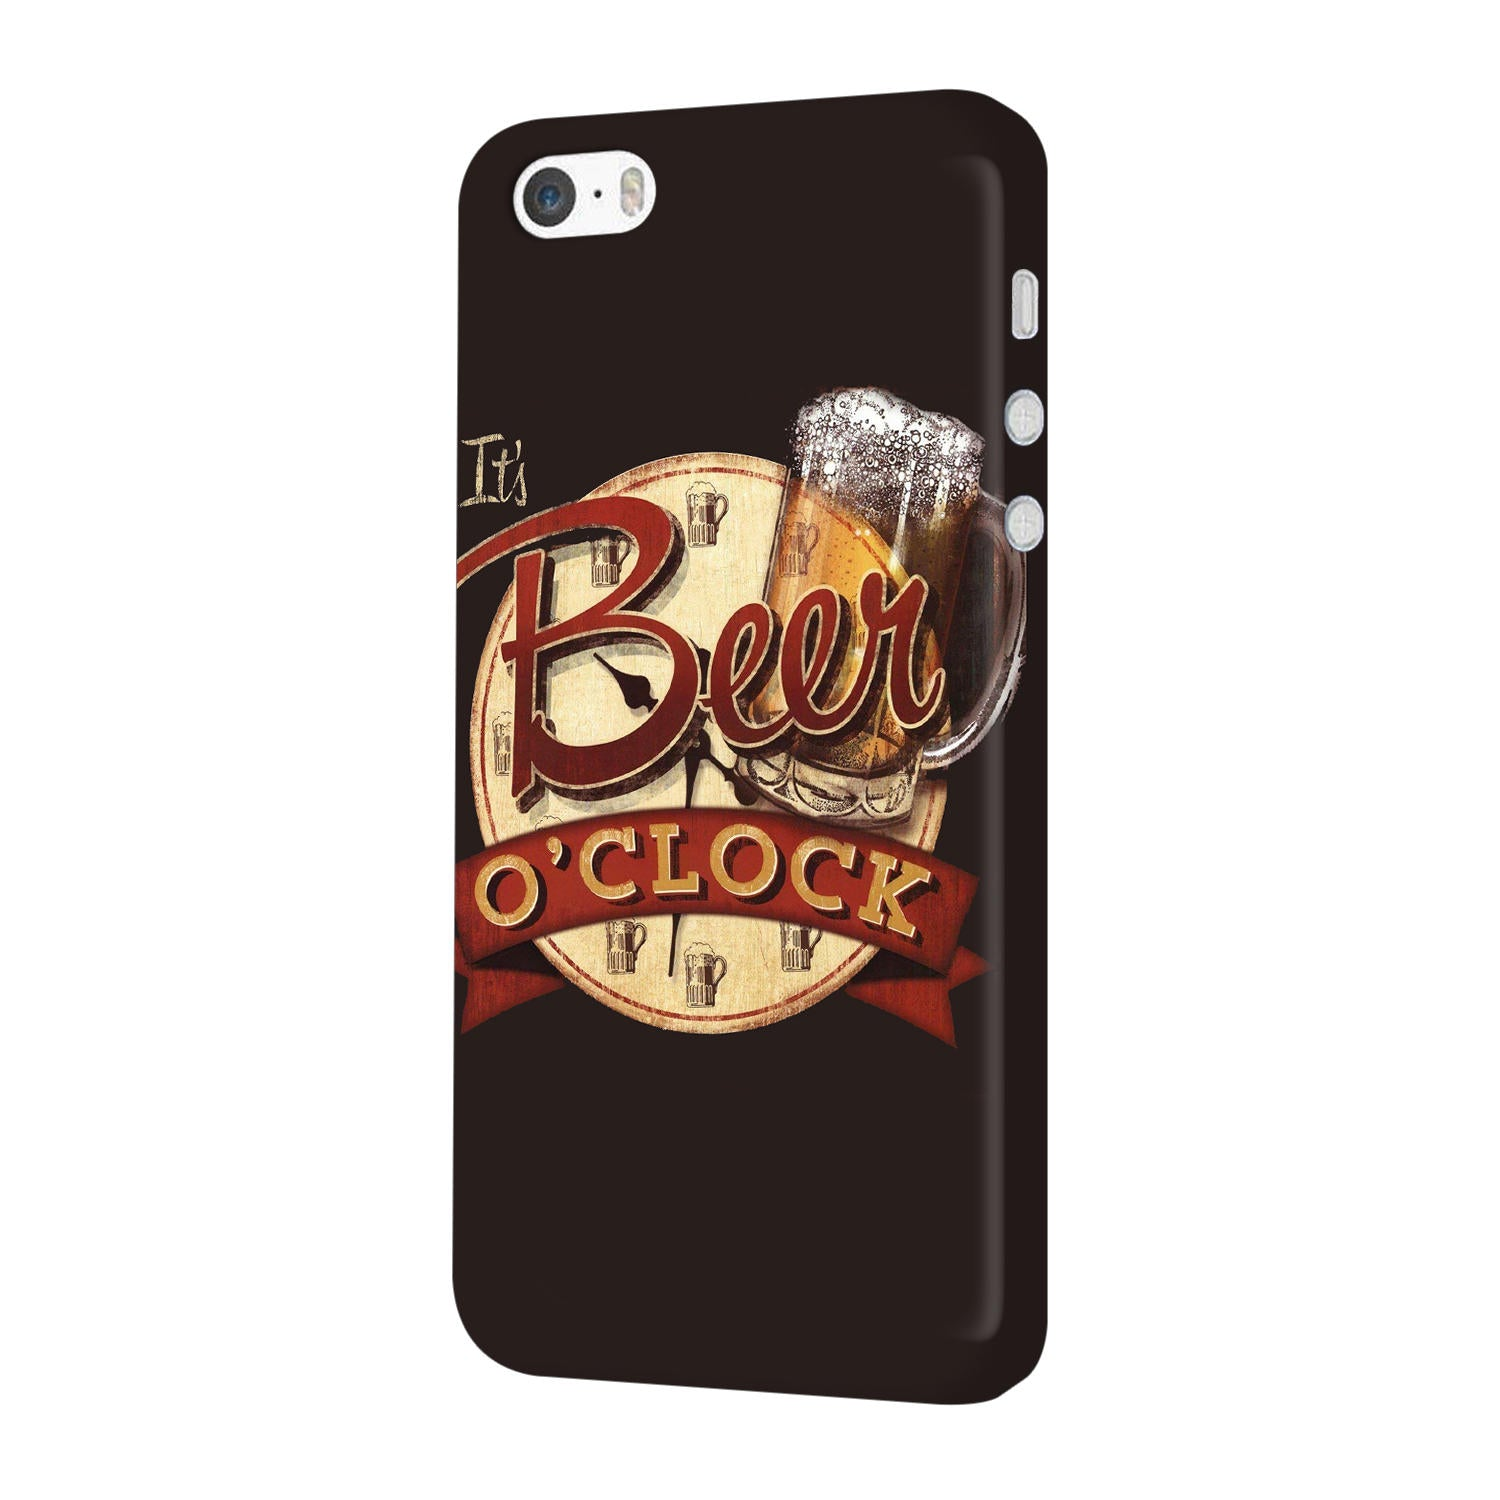 Beer Oclock Beer Lovers iPhone 5 Mobile Cover Case